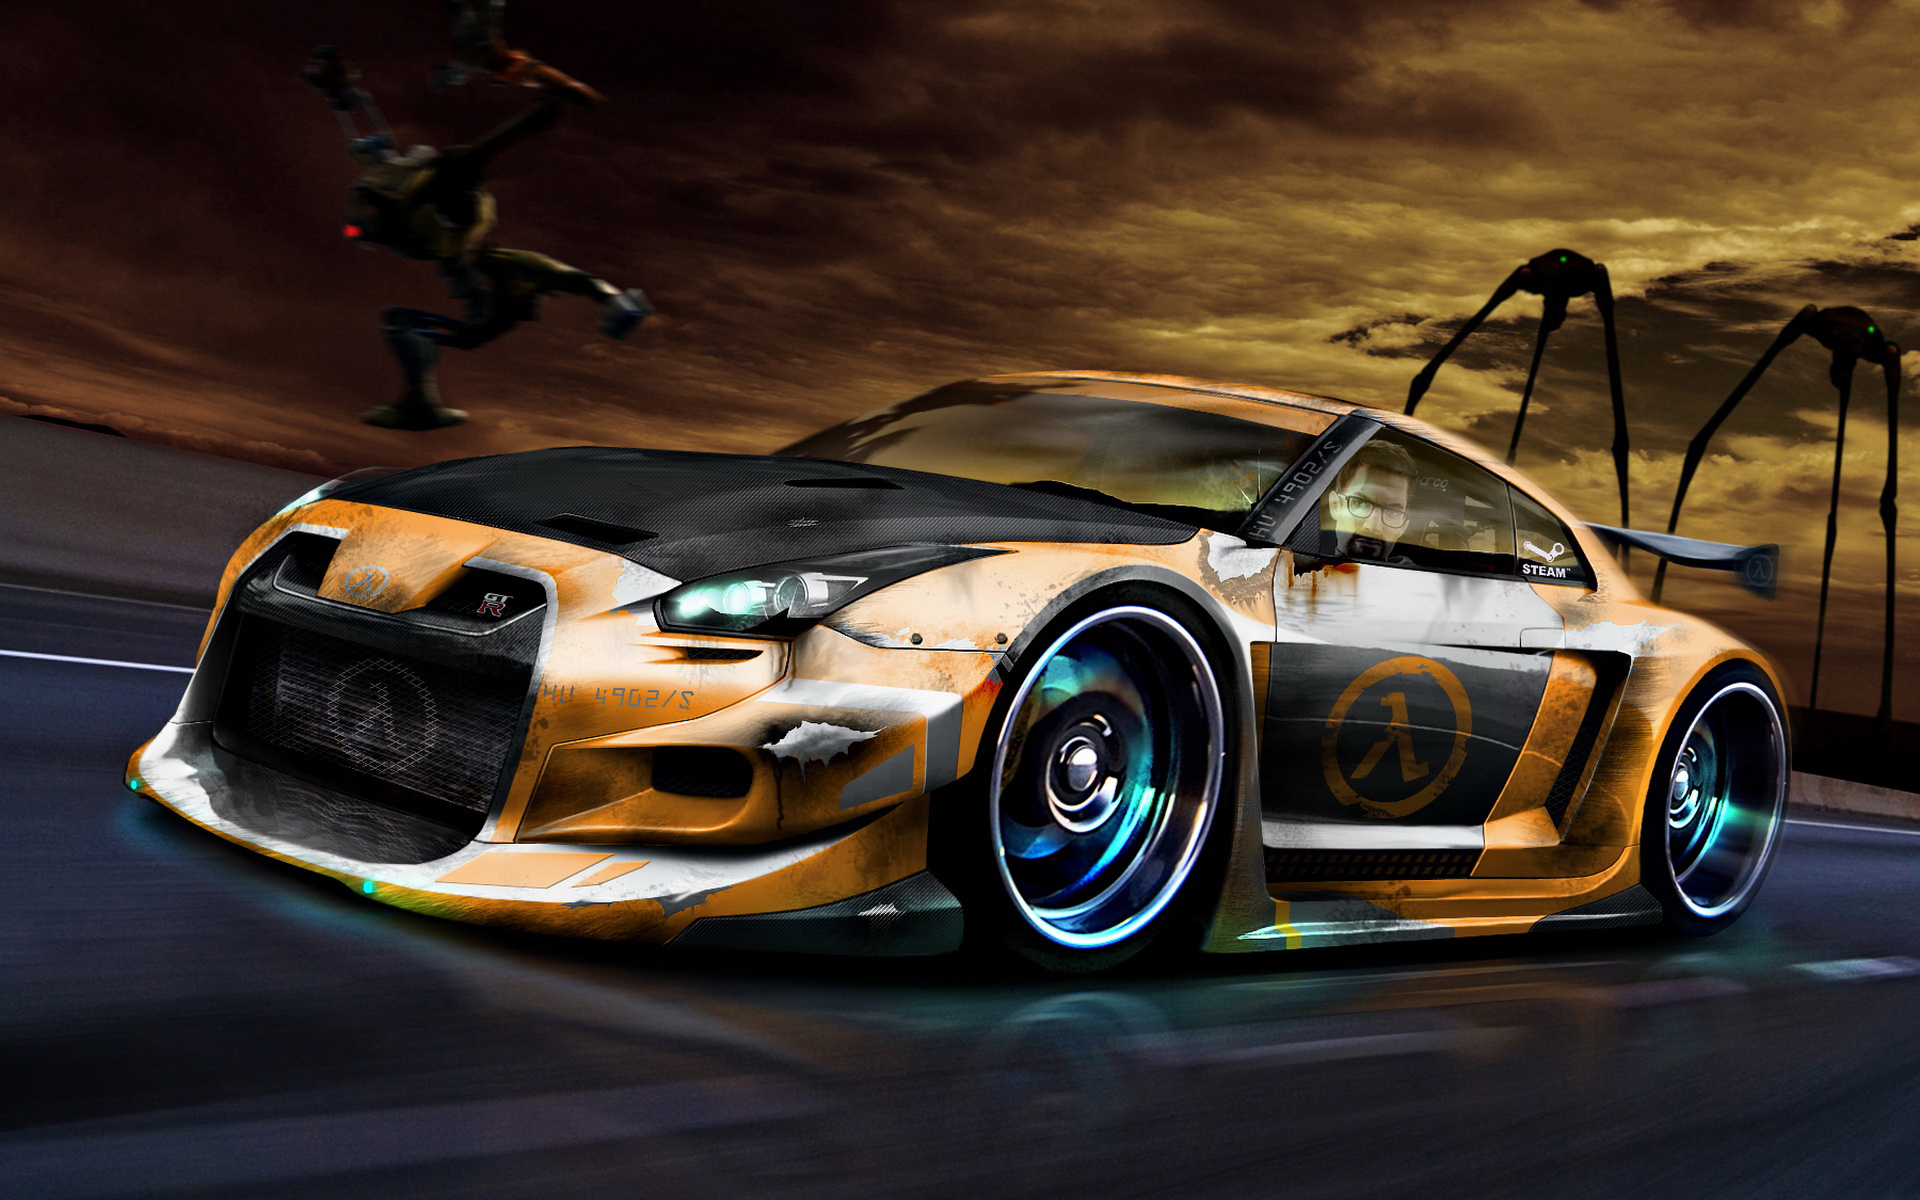 Street Racing Cars Wallpapers 20 Background 1920x1200